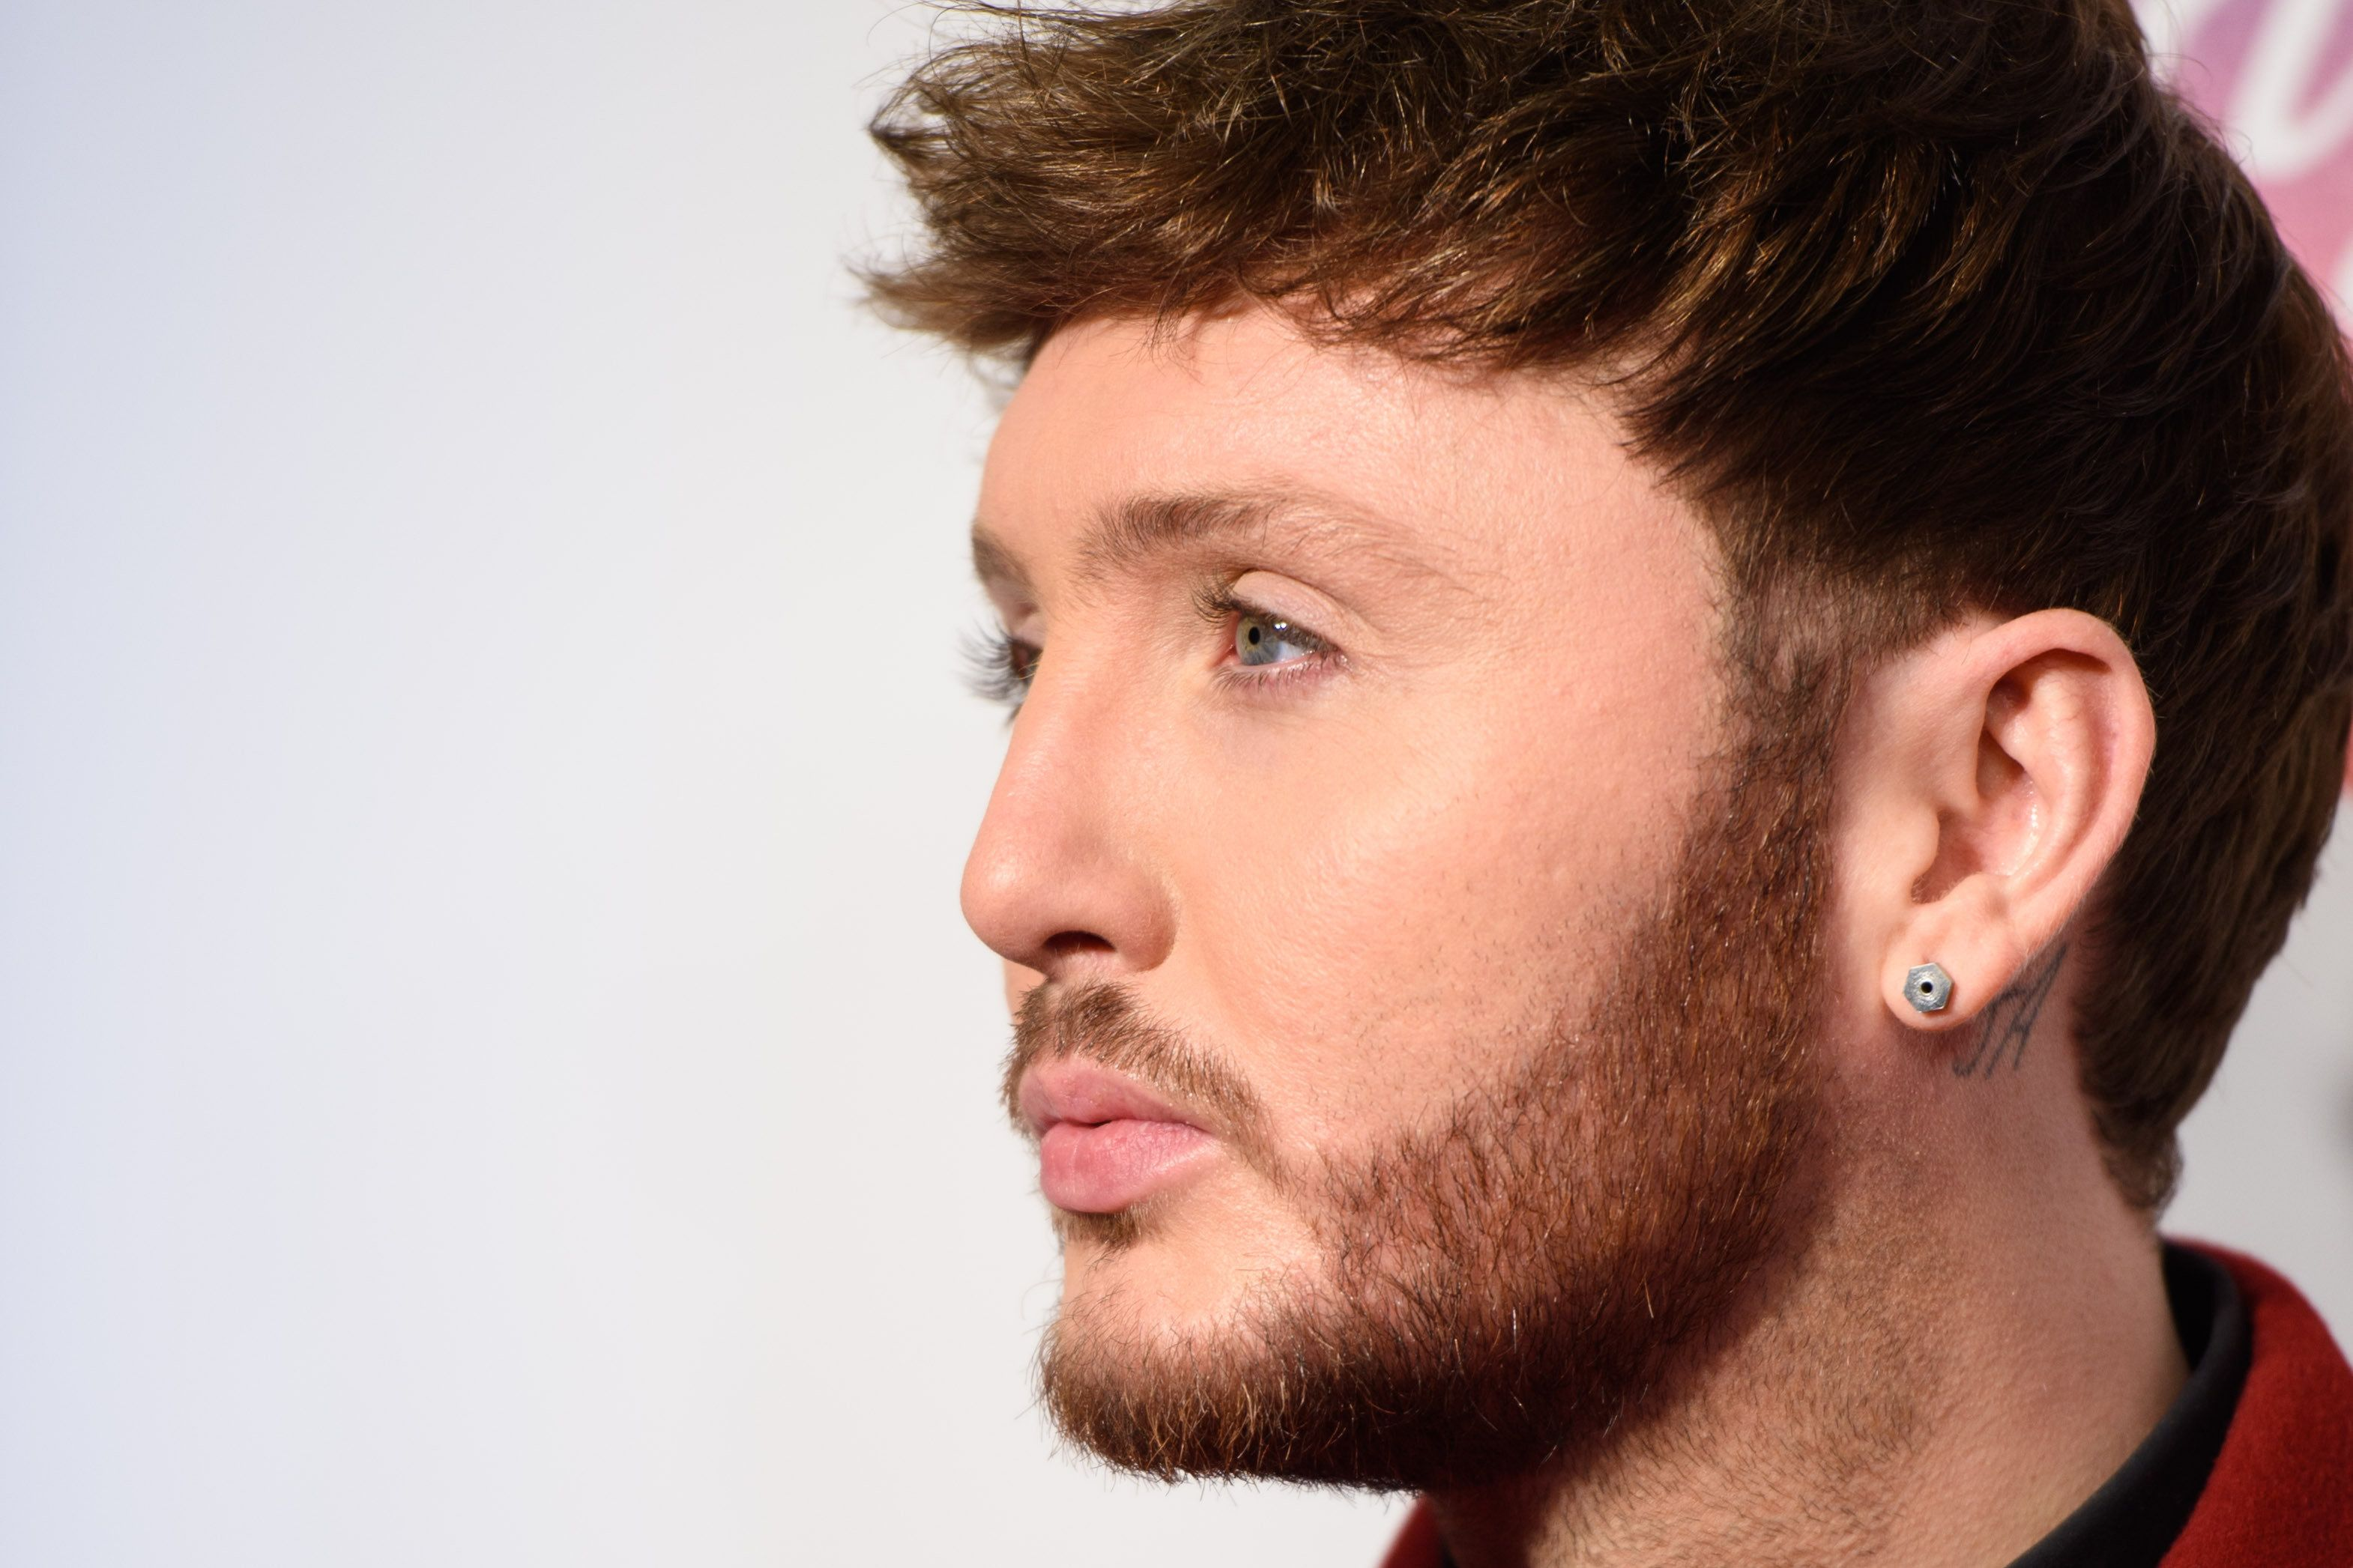 'I Want To Surprise People': James Arthur On Changing The Narrative After Coming Back From The